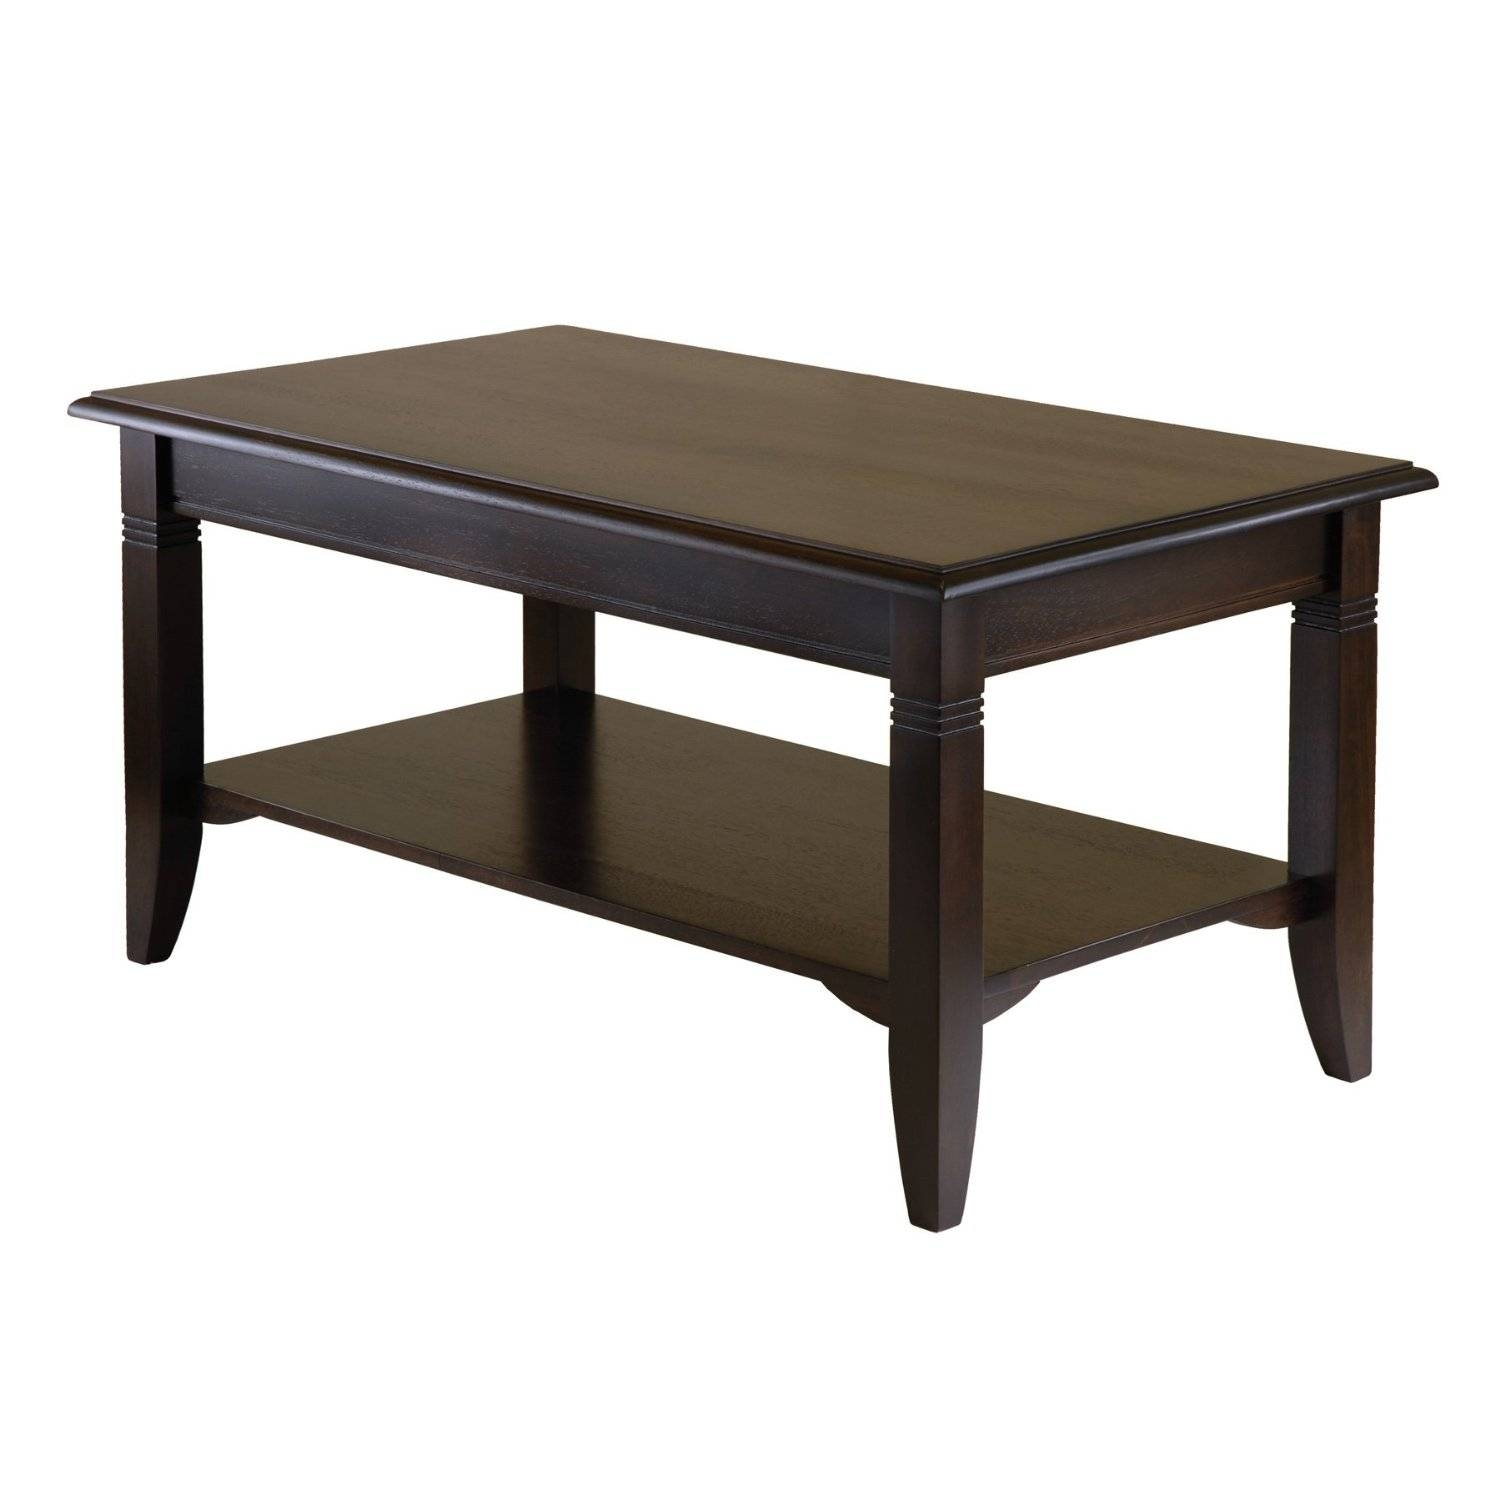 Masculine Dark Wood Coffee Table – Square Dark Wood Coffee Tables throughout Dark Wooden Coffee Tables (Image 28 of 30)